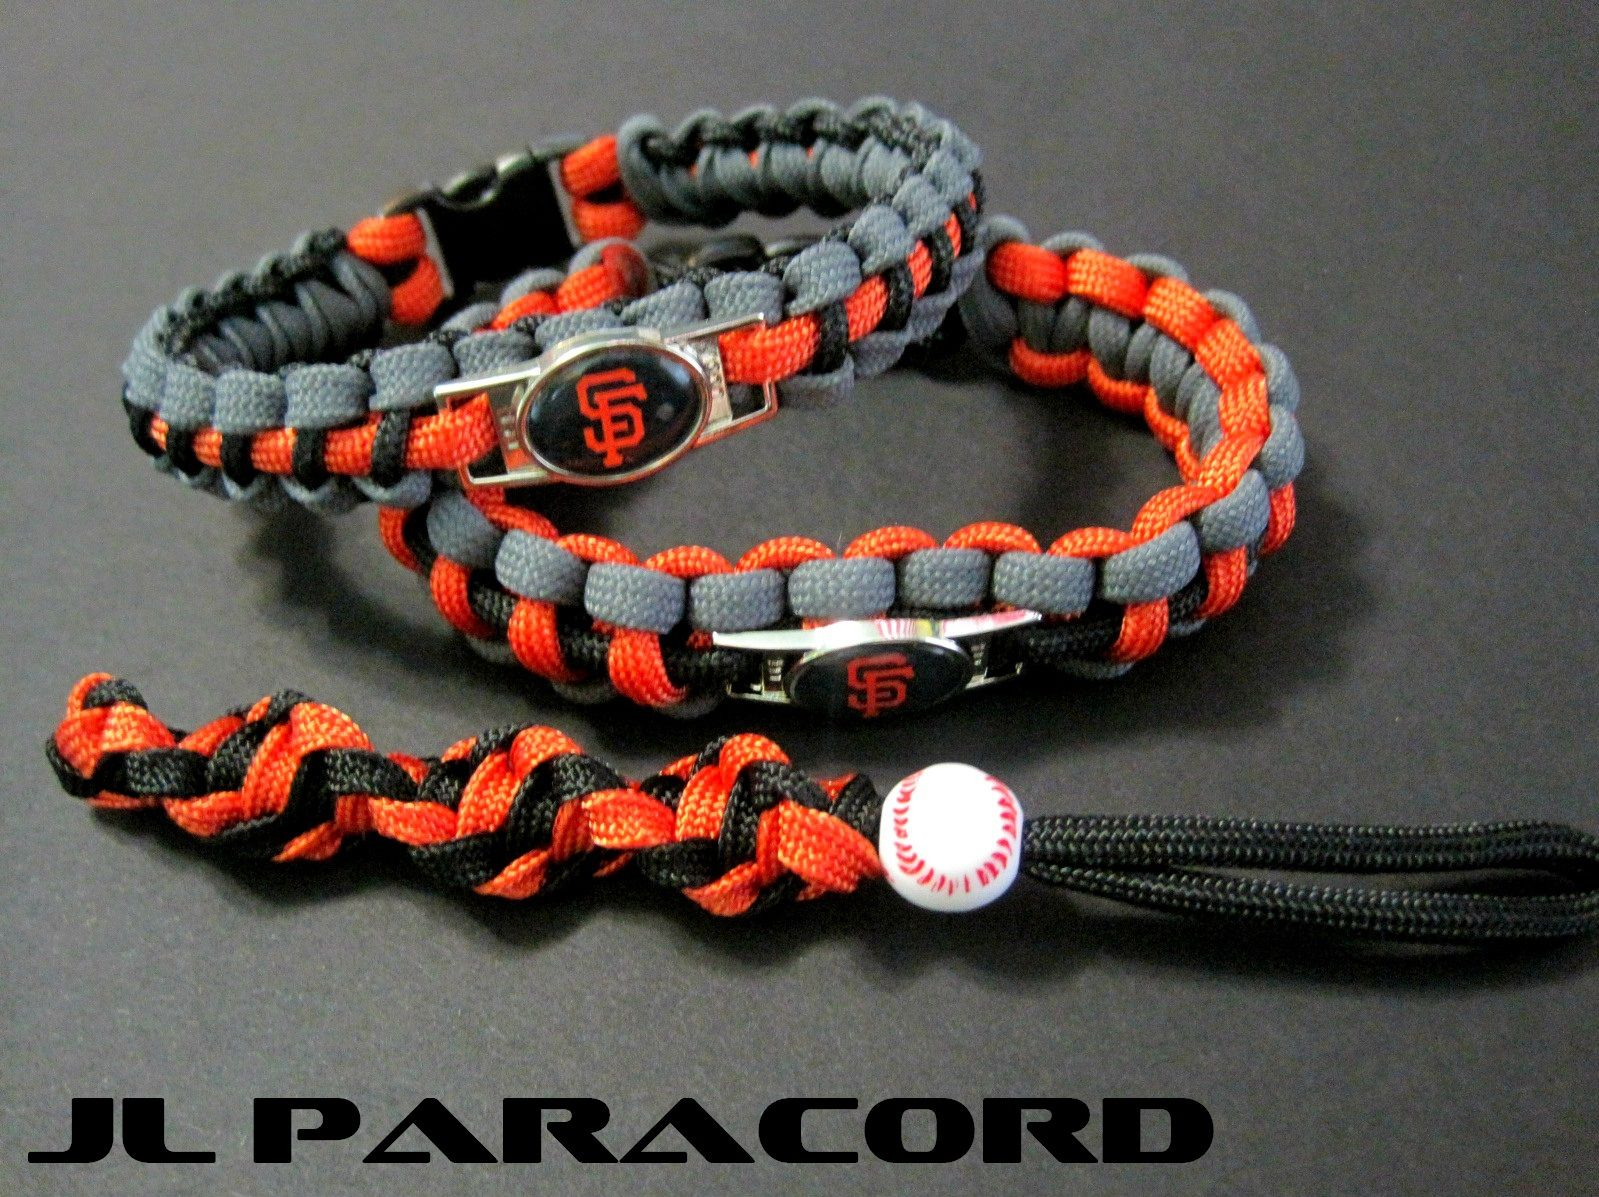 Custom Sf Giants Paracord Bracelets 10 50ea And Baseball Keychain Knife Lanyard 6ea Price Includes Shipping Contact For Orders With Your Favorite